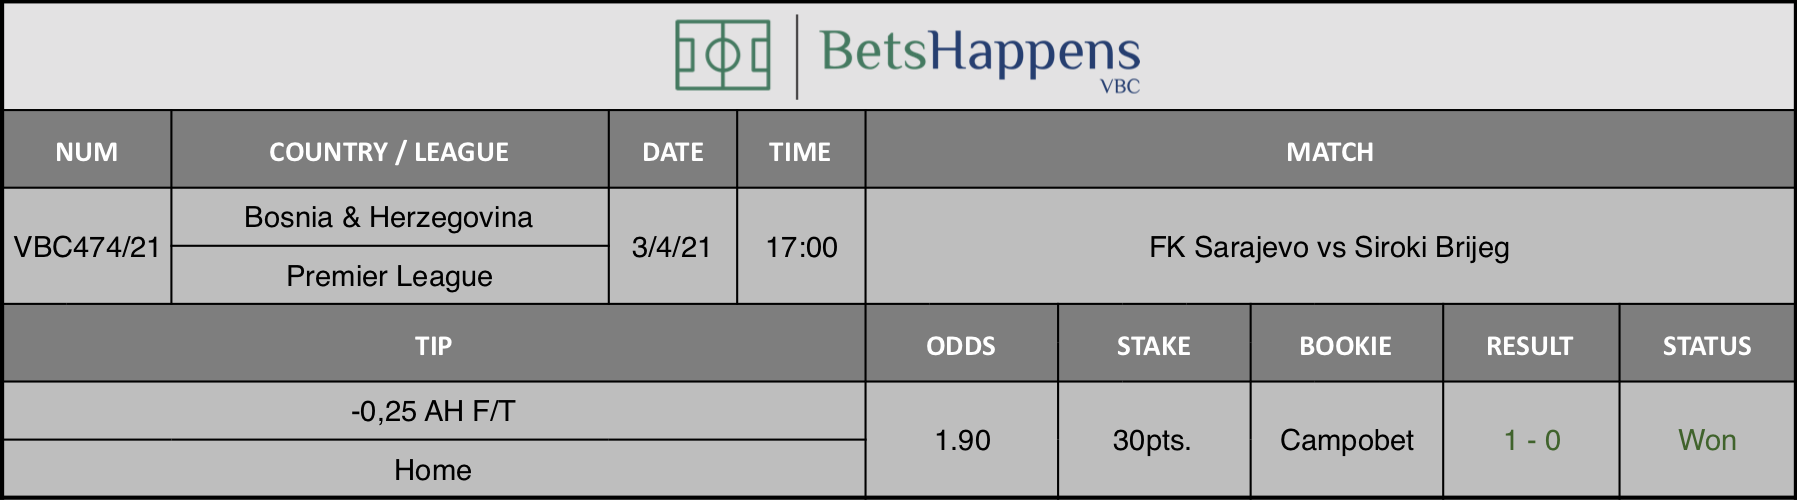 Results of our tip for the FK Sarajevo vs Siroki Brijeg match where -0,25 AH F/T Home is recommended.